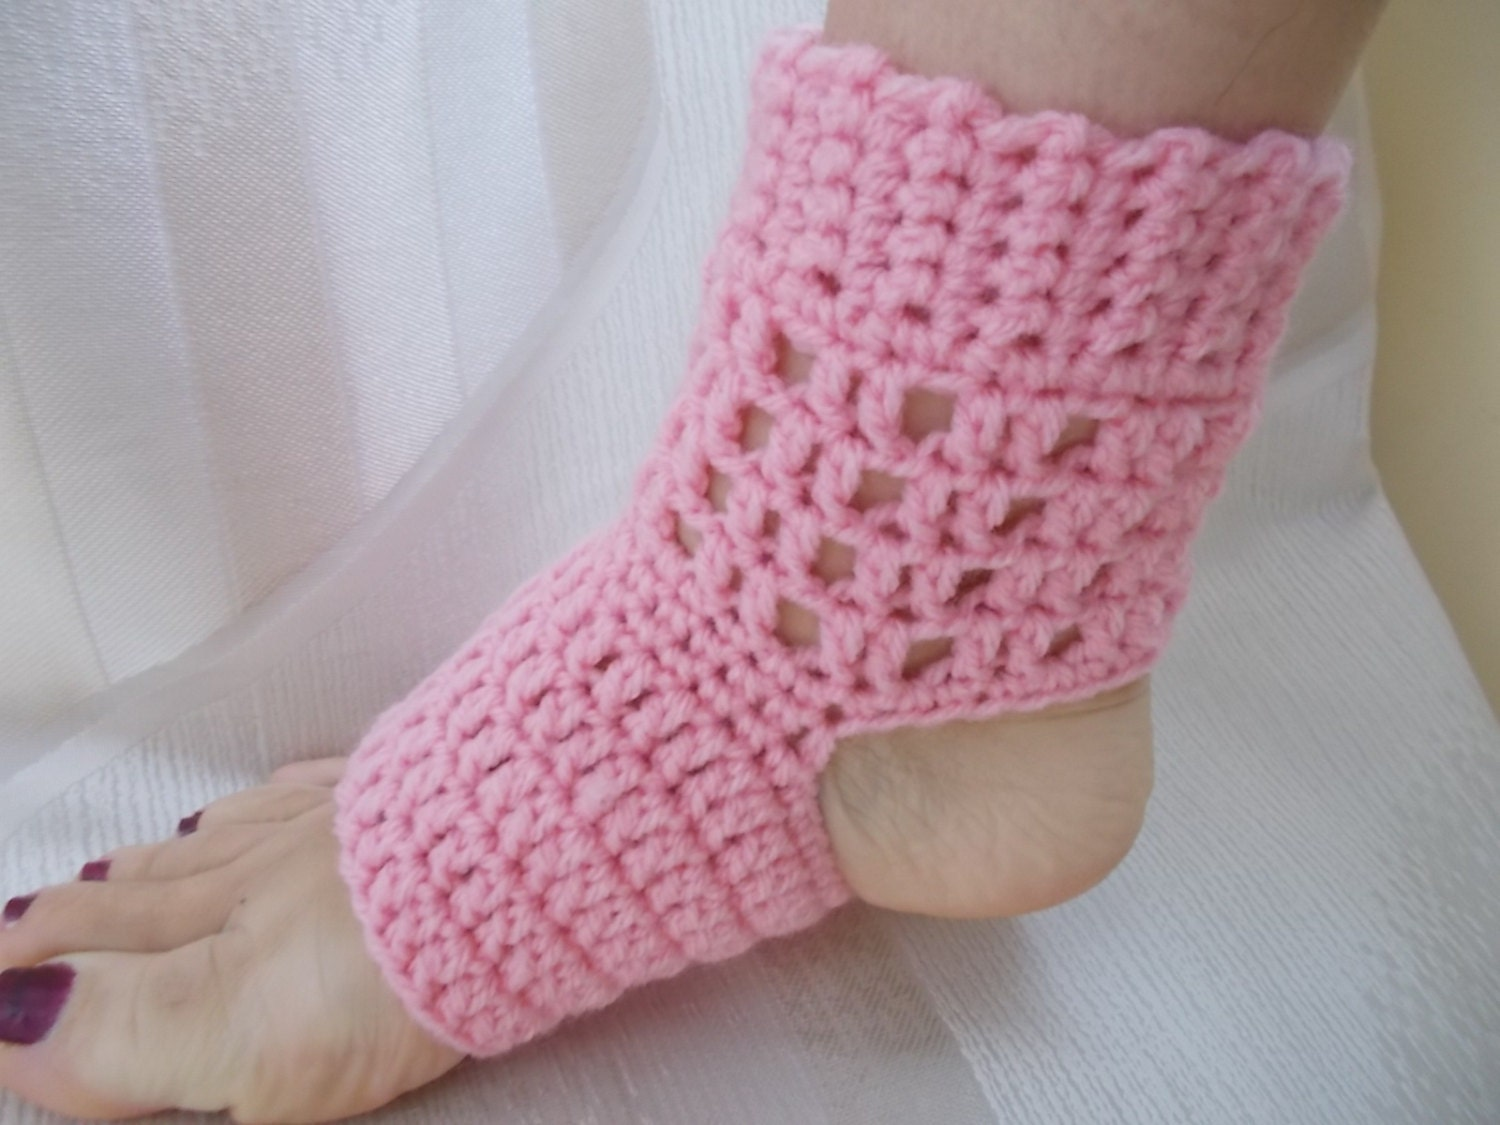 CROCHET PATTERN, Crochet Yoga Socks PATTERN, Yoga Socks, pattern ...